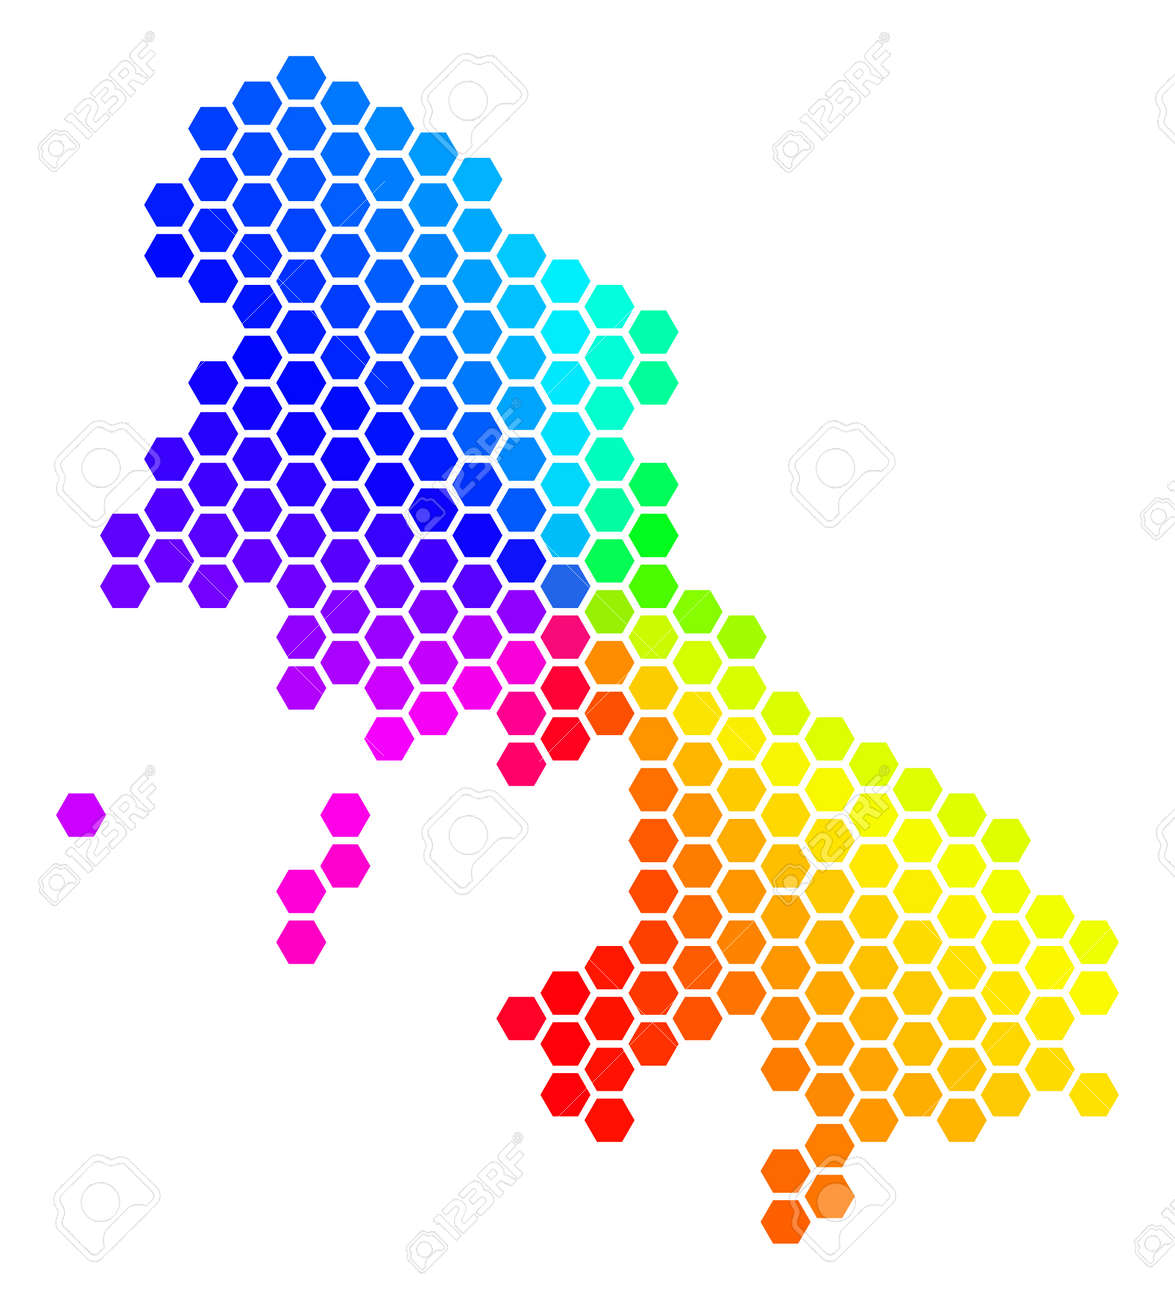 Spectrum Hexagon Skyros Greek Island Map Vector Geographic Map